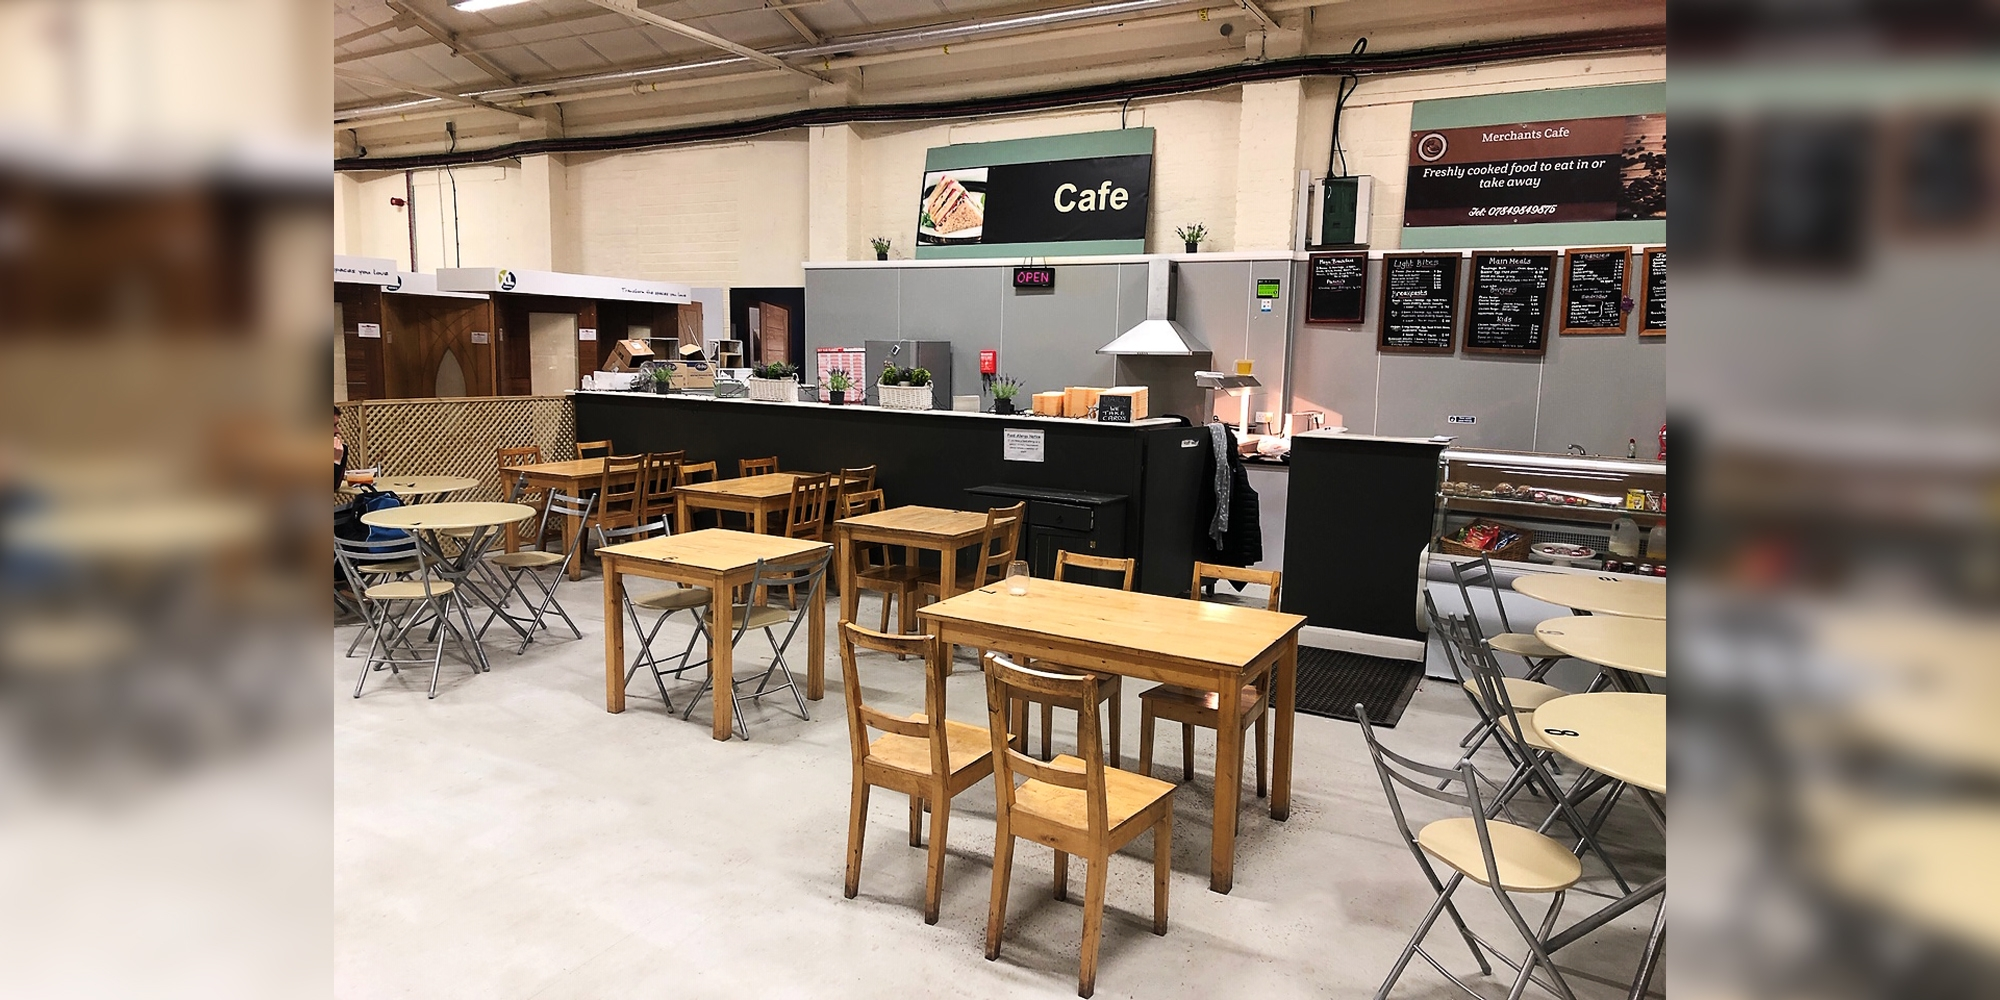 cafe chester, food broughton, builders merchant cafe, merchants cafe, food a55